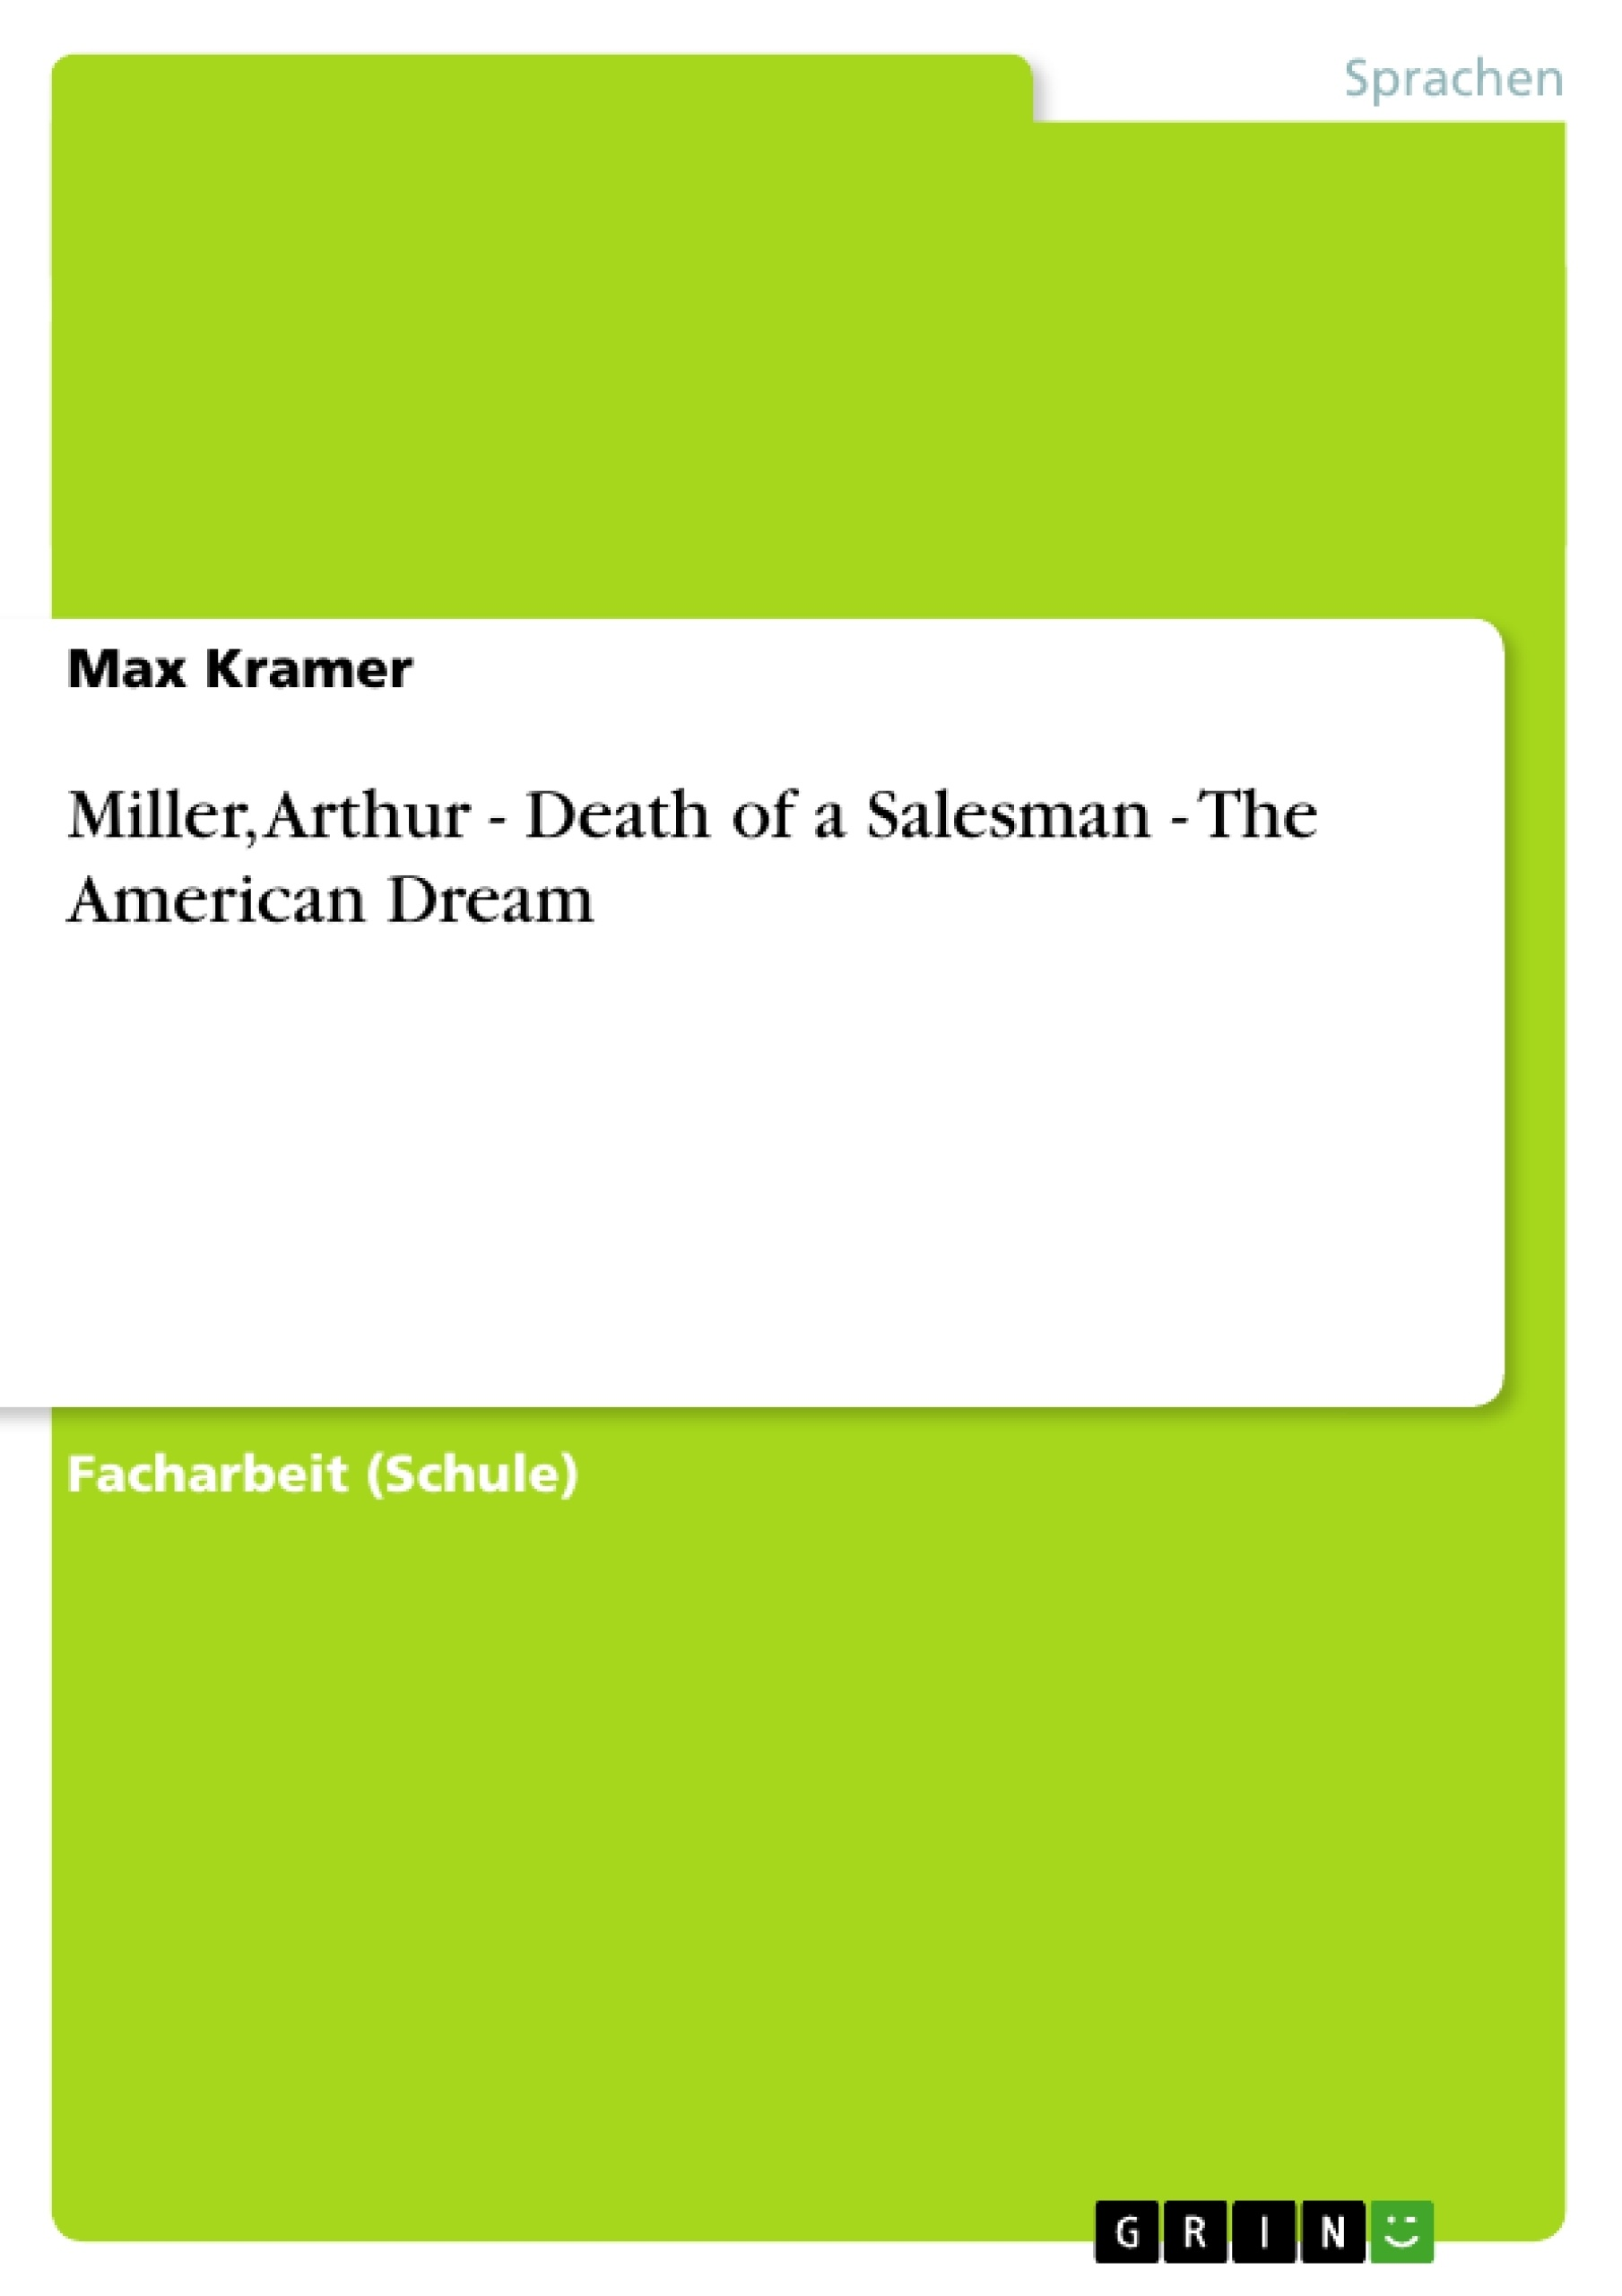 miller arthur death of a sman the american dream miller arthur death of a sman the american dream masterarbeit hausarbeit bachelorarbeit veroumlffentlichen